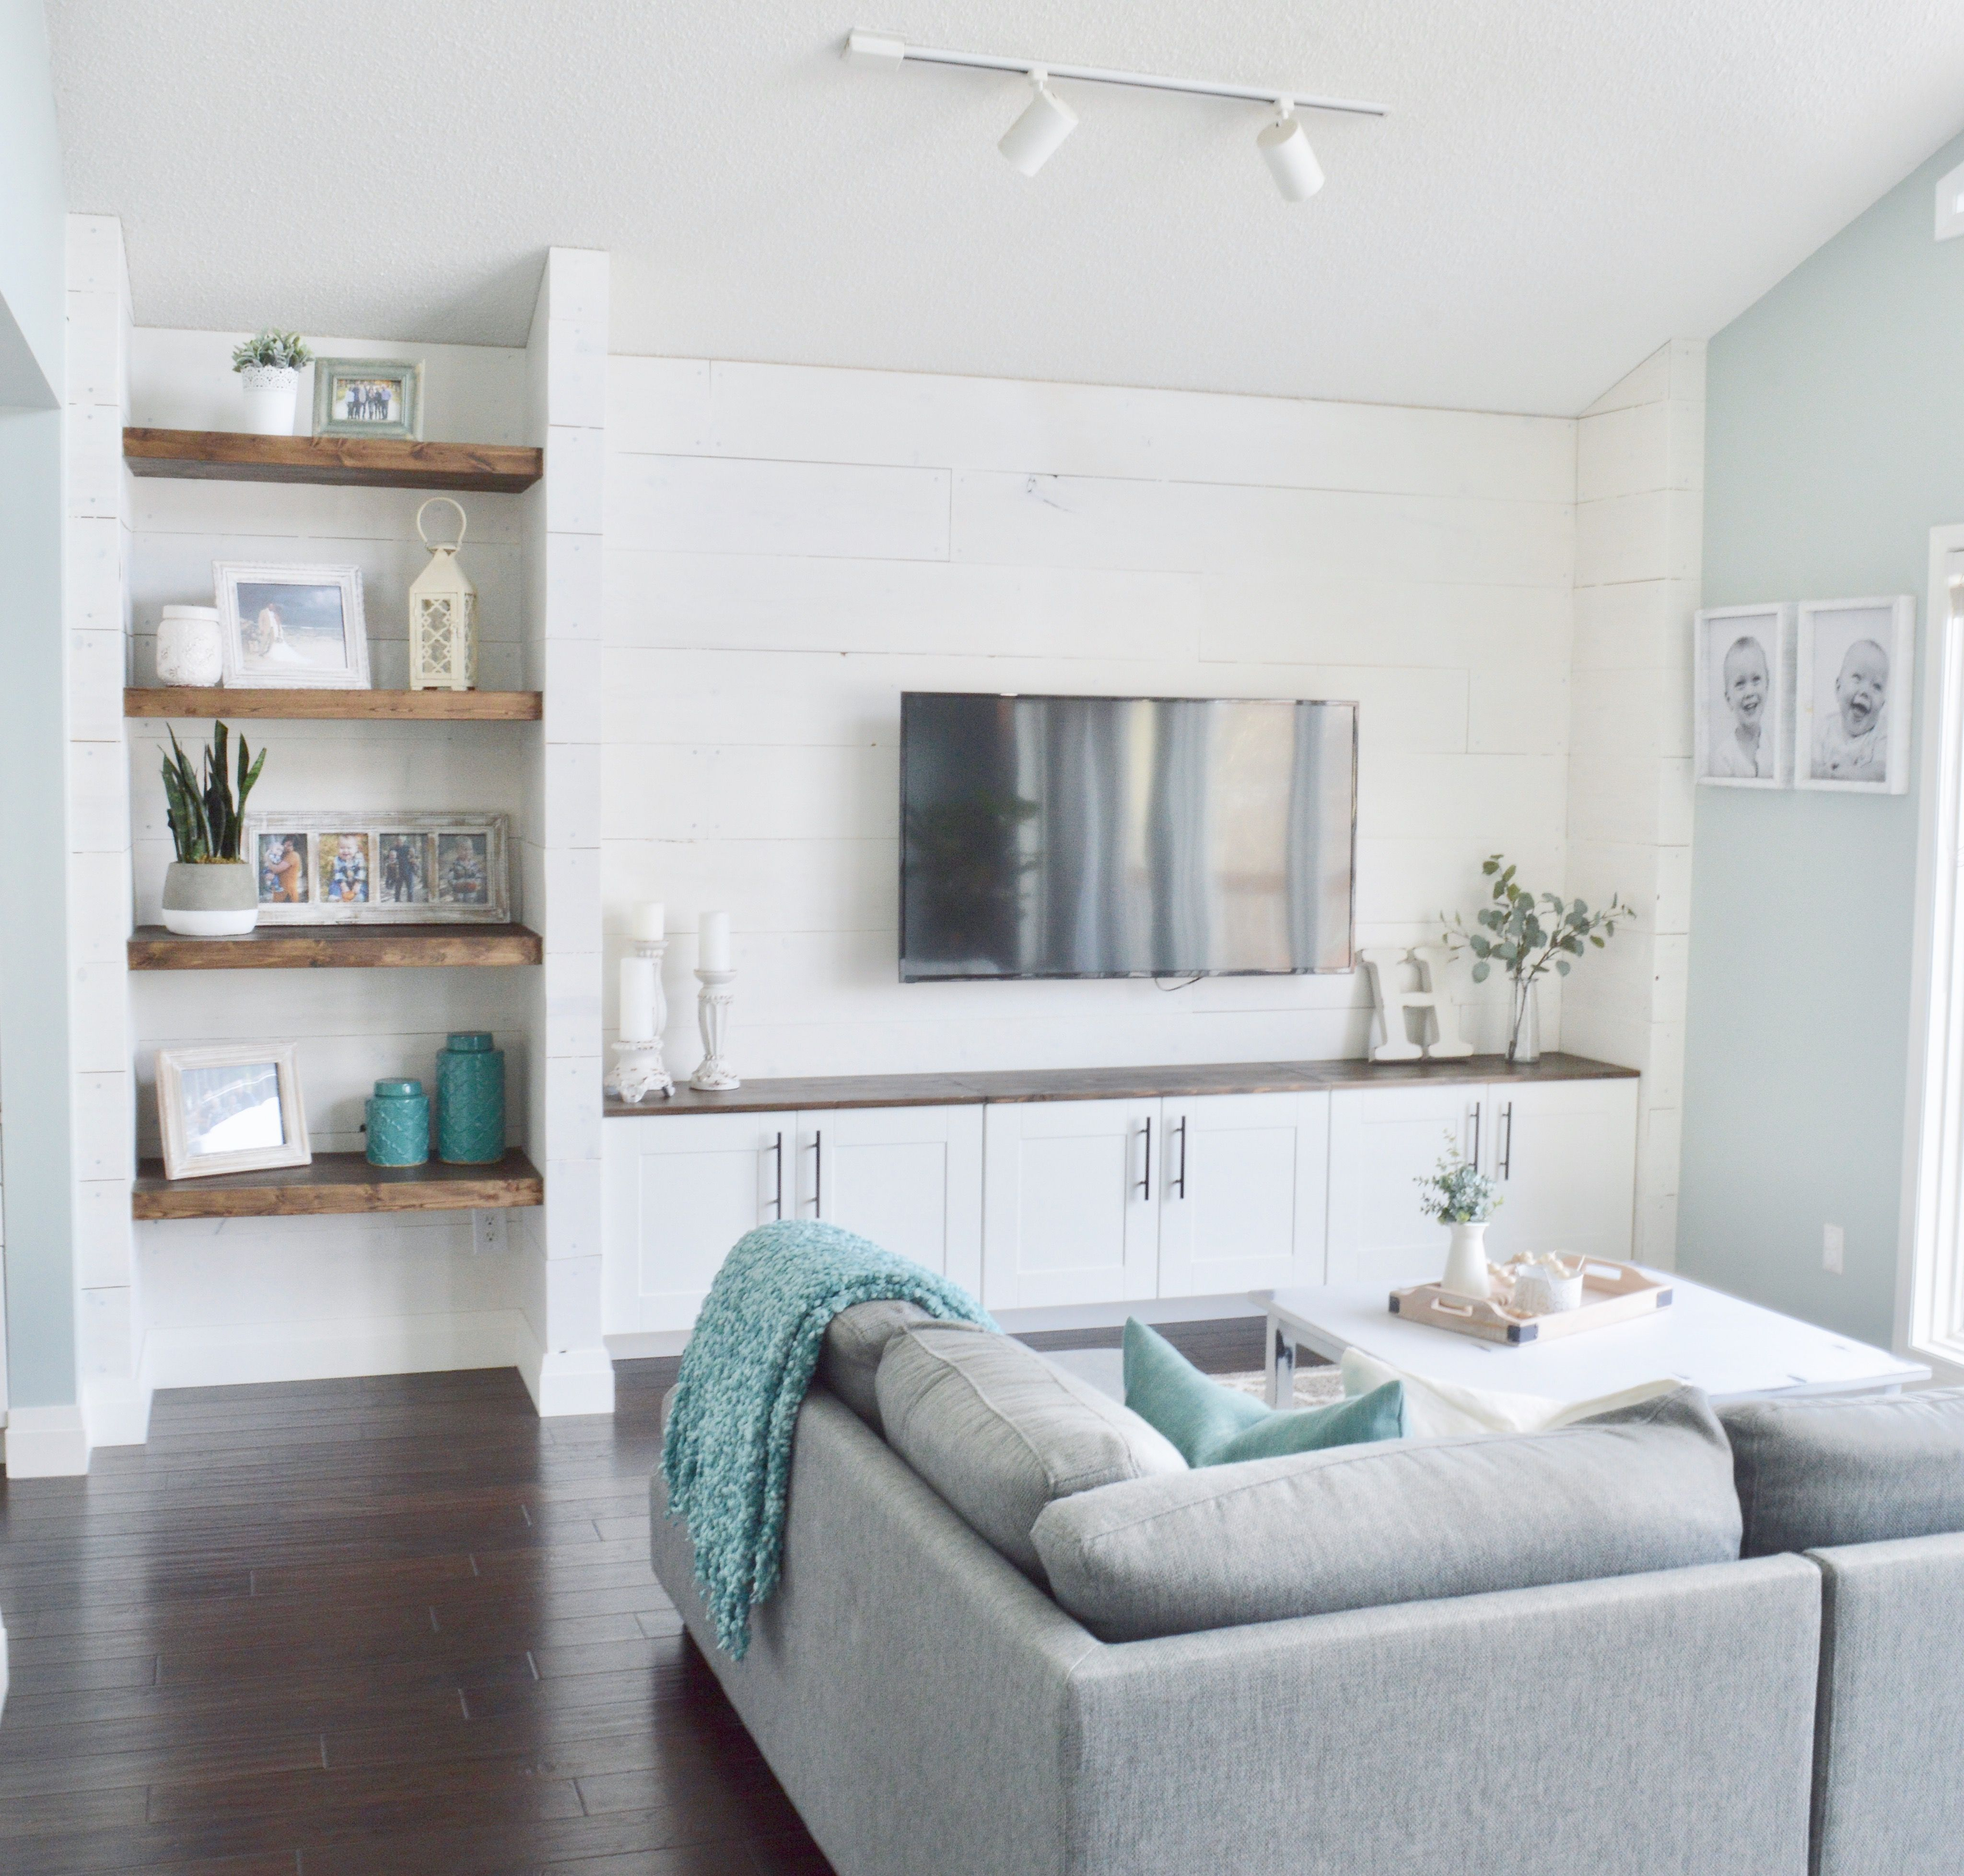 build your own shiplap wall unit with ikea cabinets and